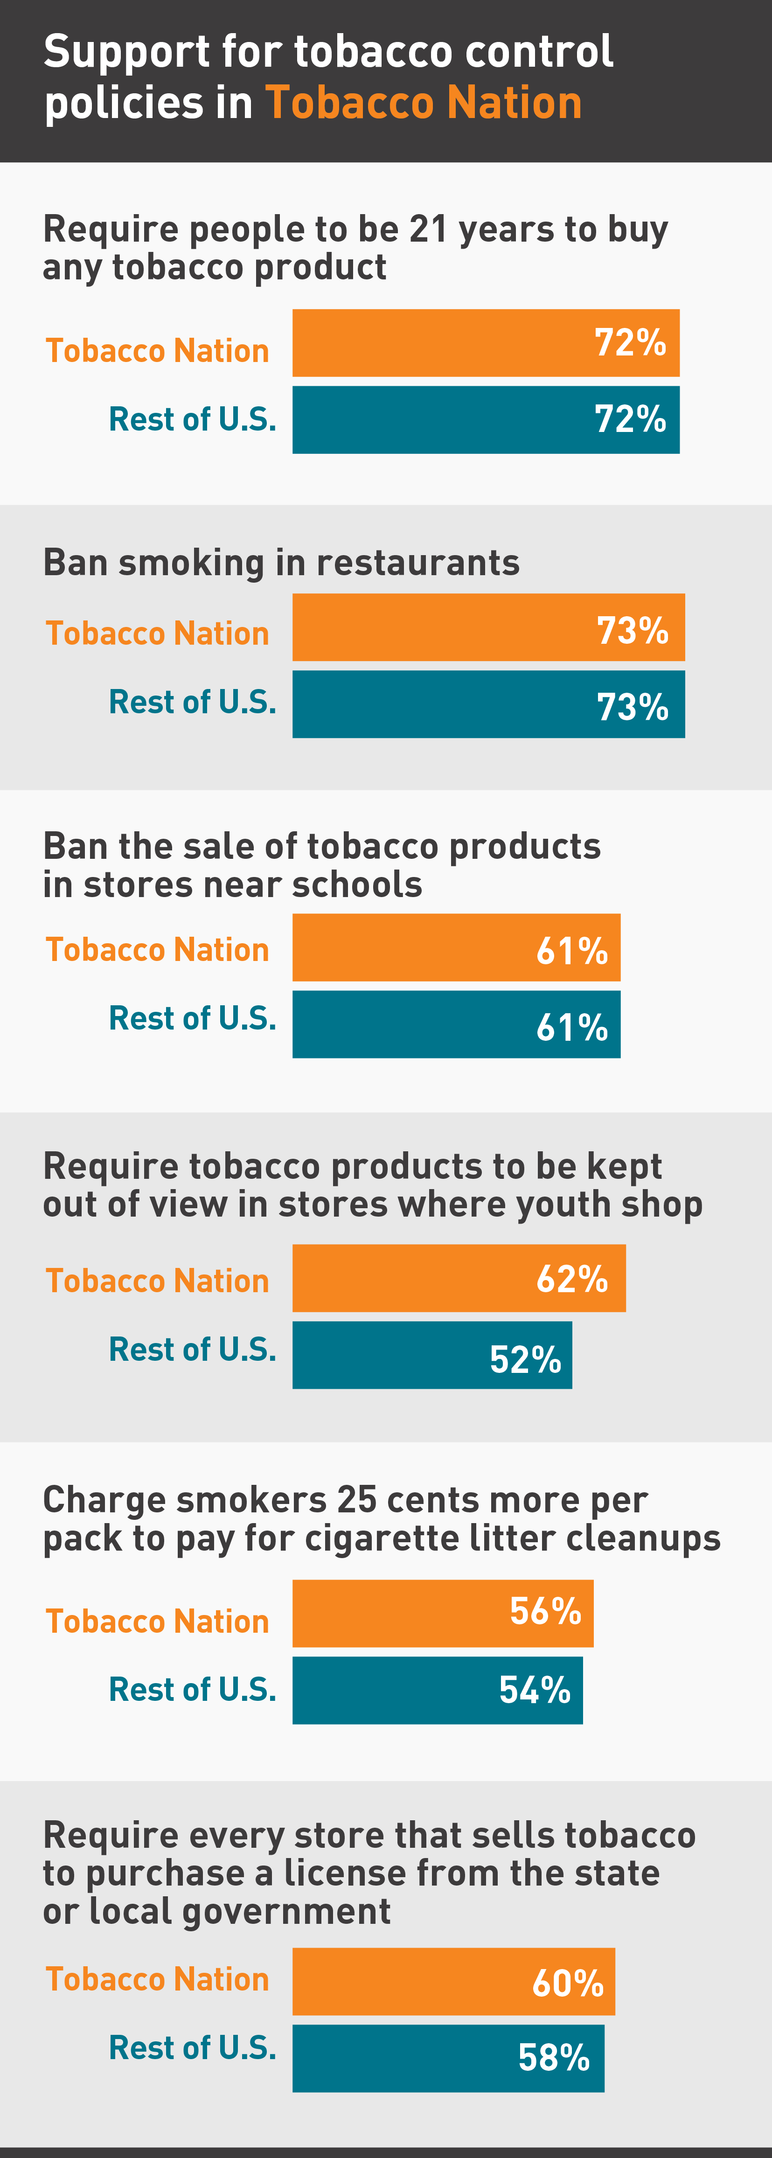 Support for tobacco control policies in Tobacco Nation